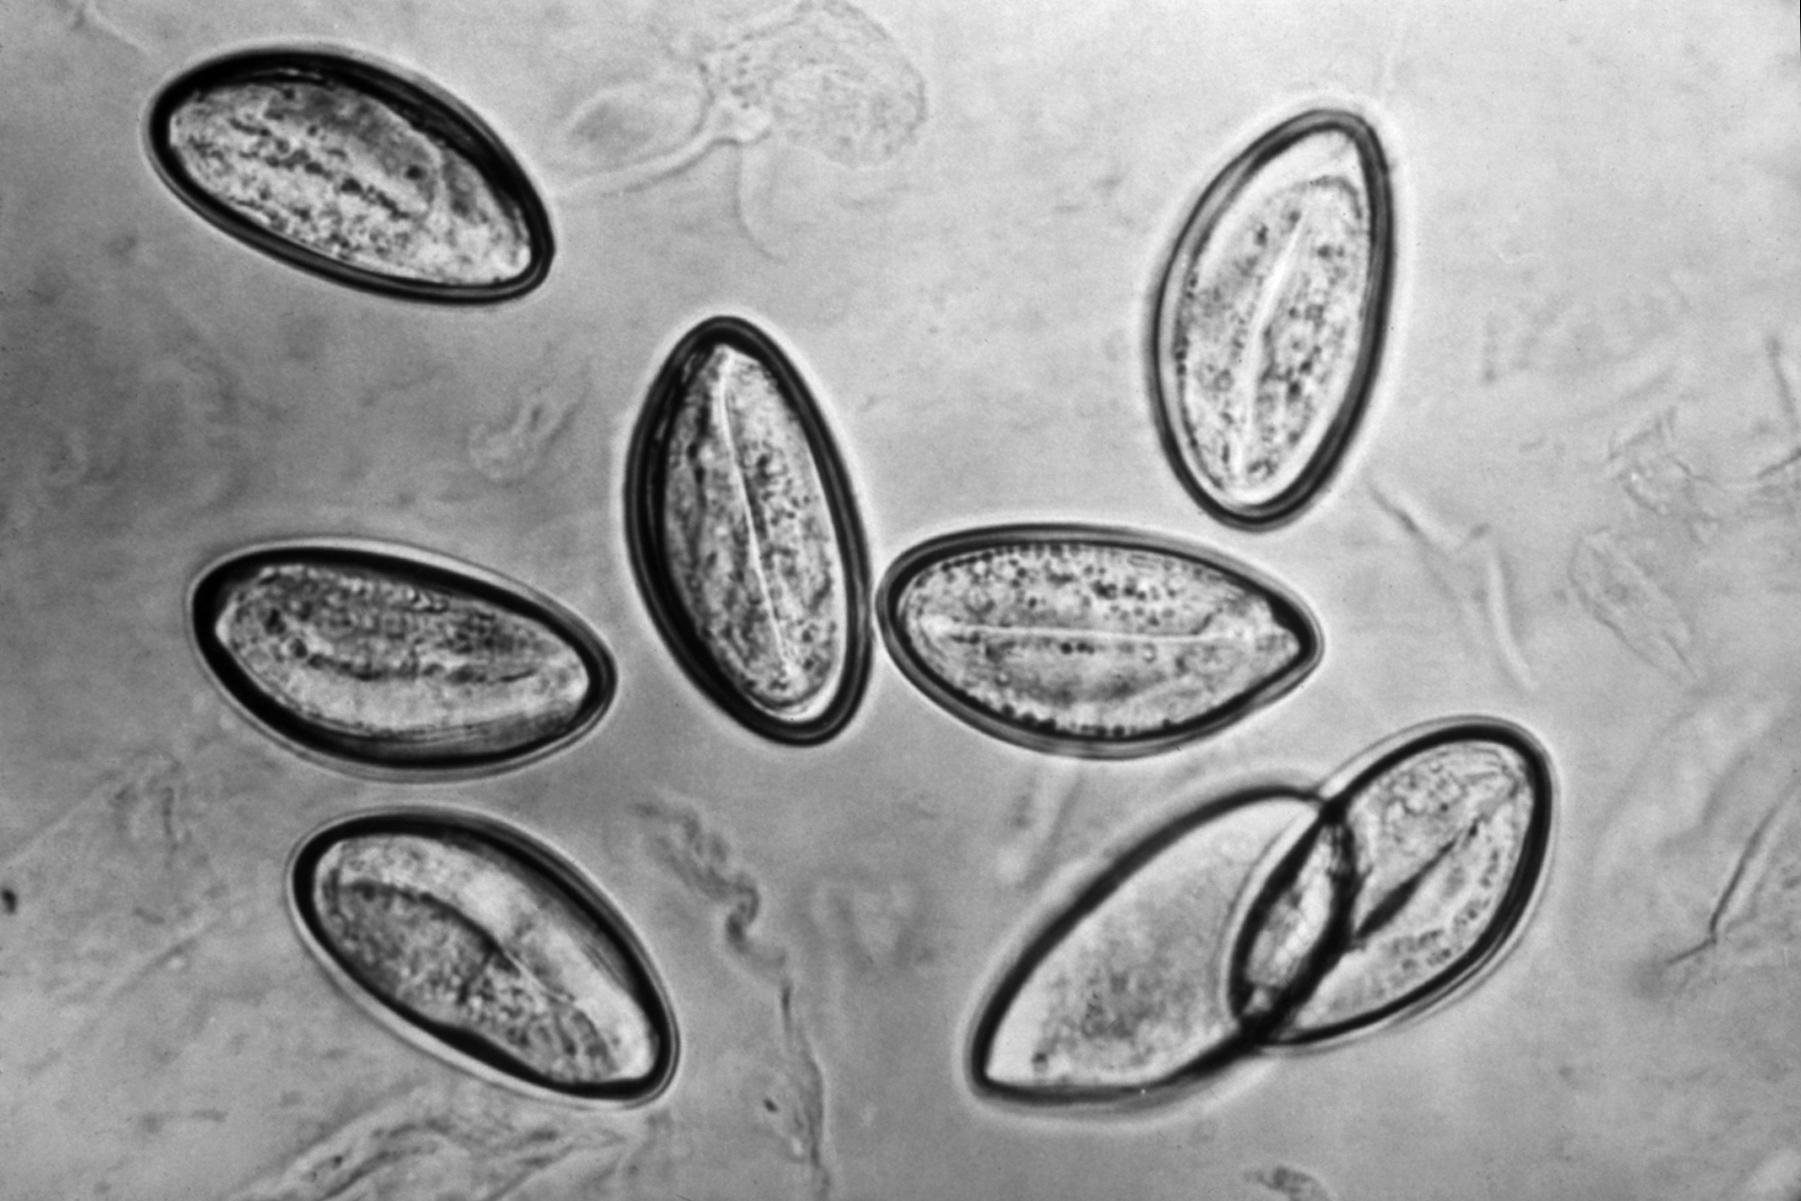 Ascaris in Giardia tablete